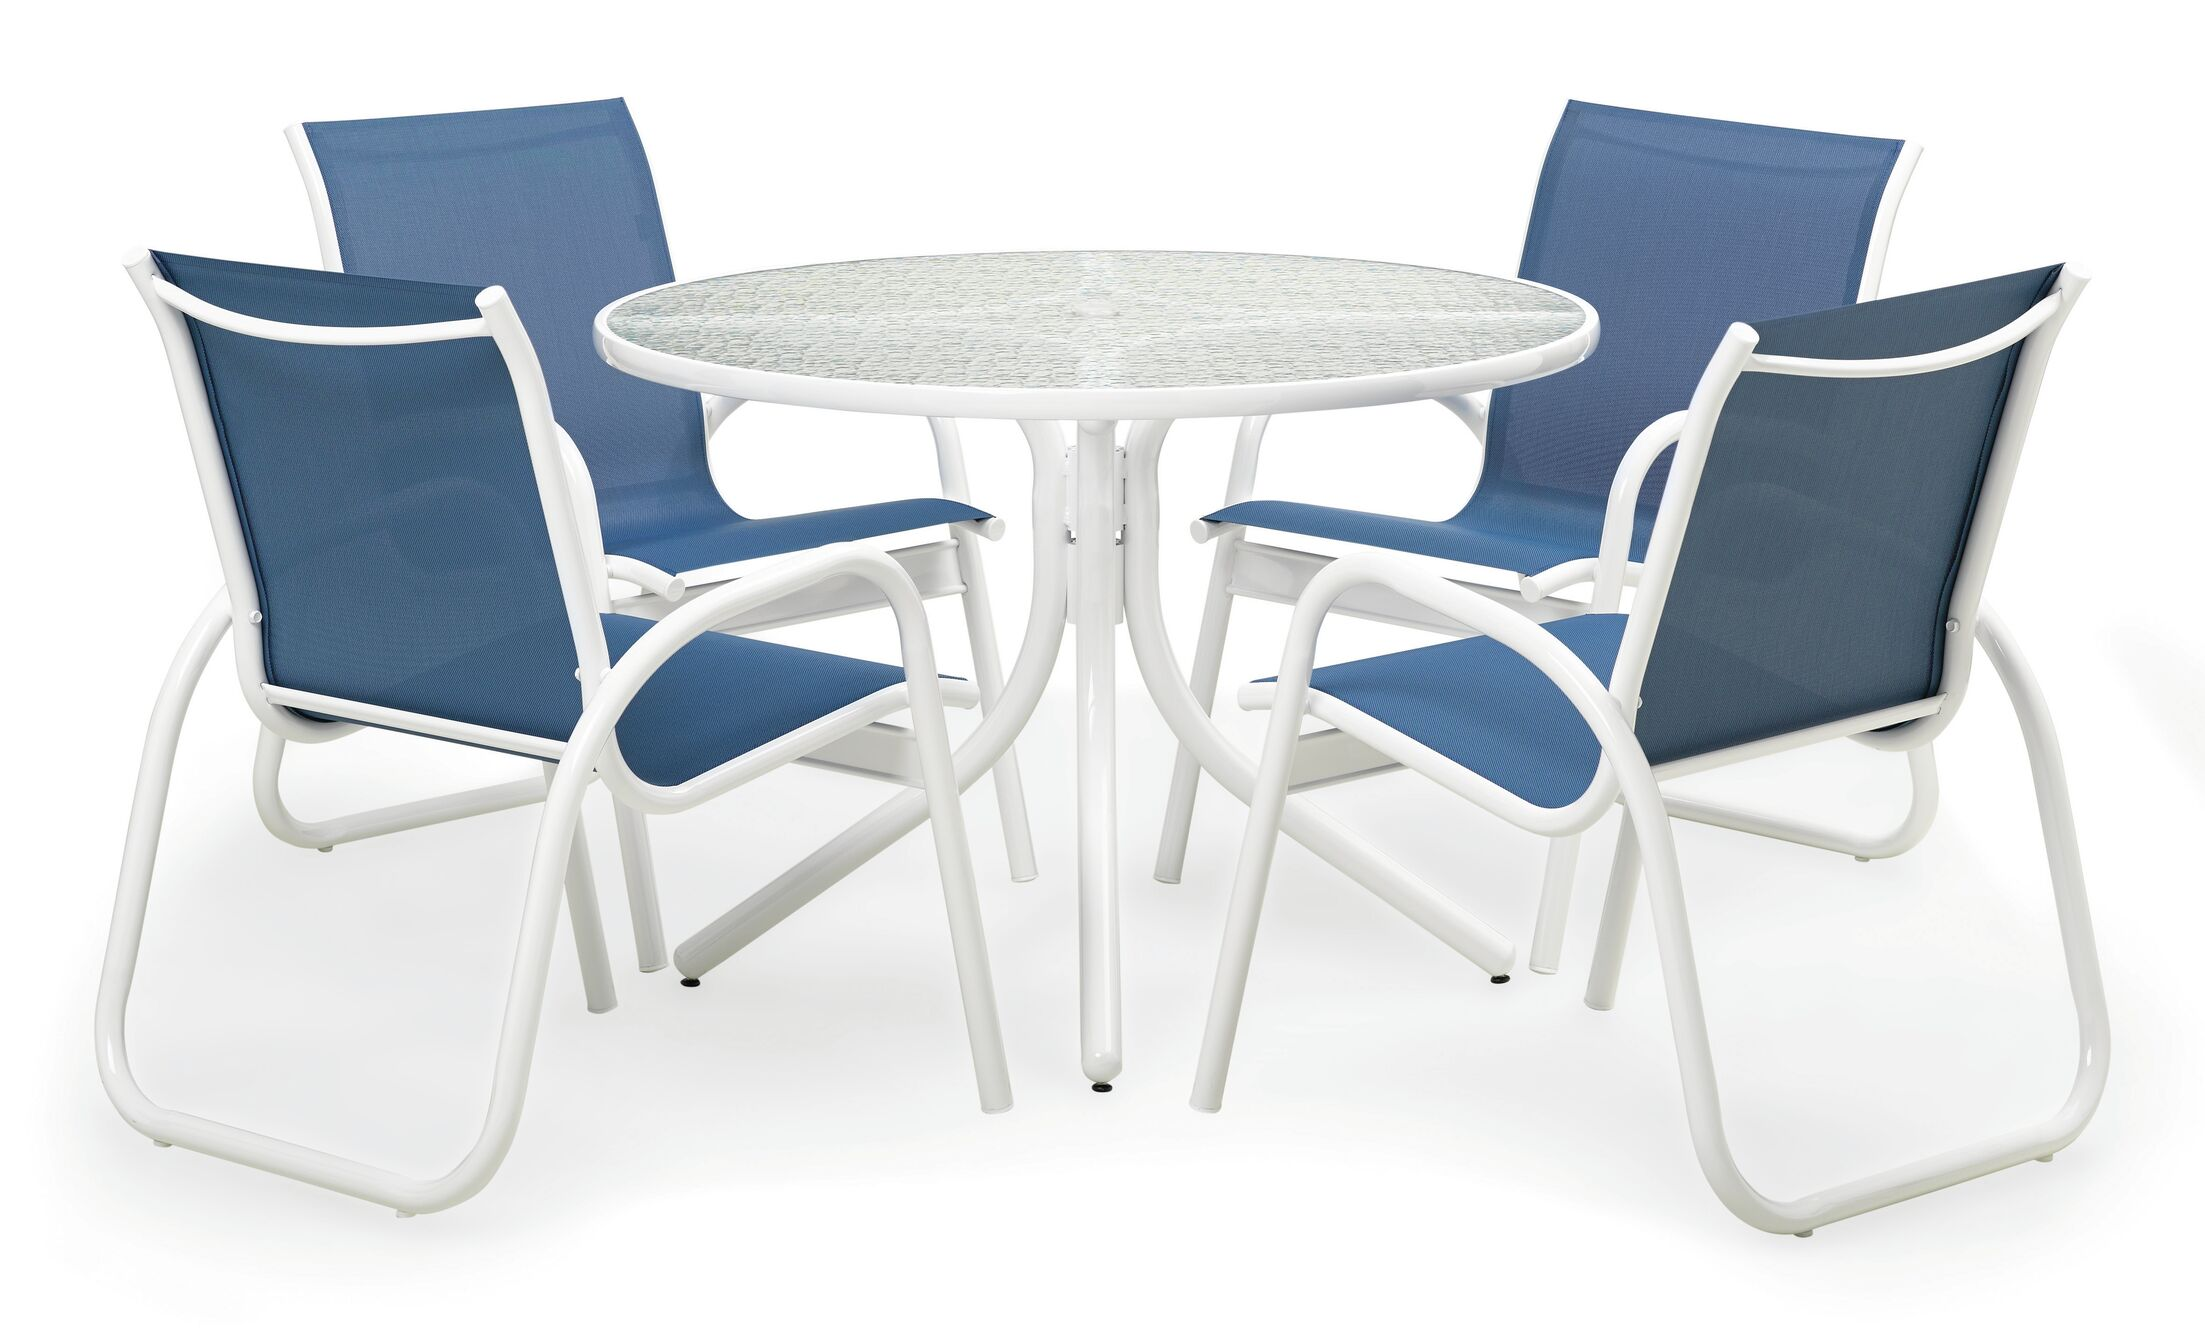 Maust 5 Piece Dining Set with Cushions Color: Gloss White/Cobalt